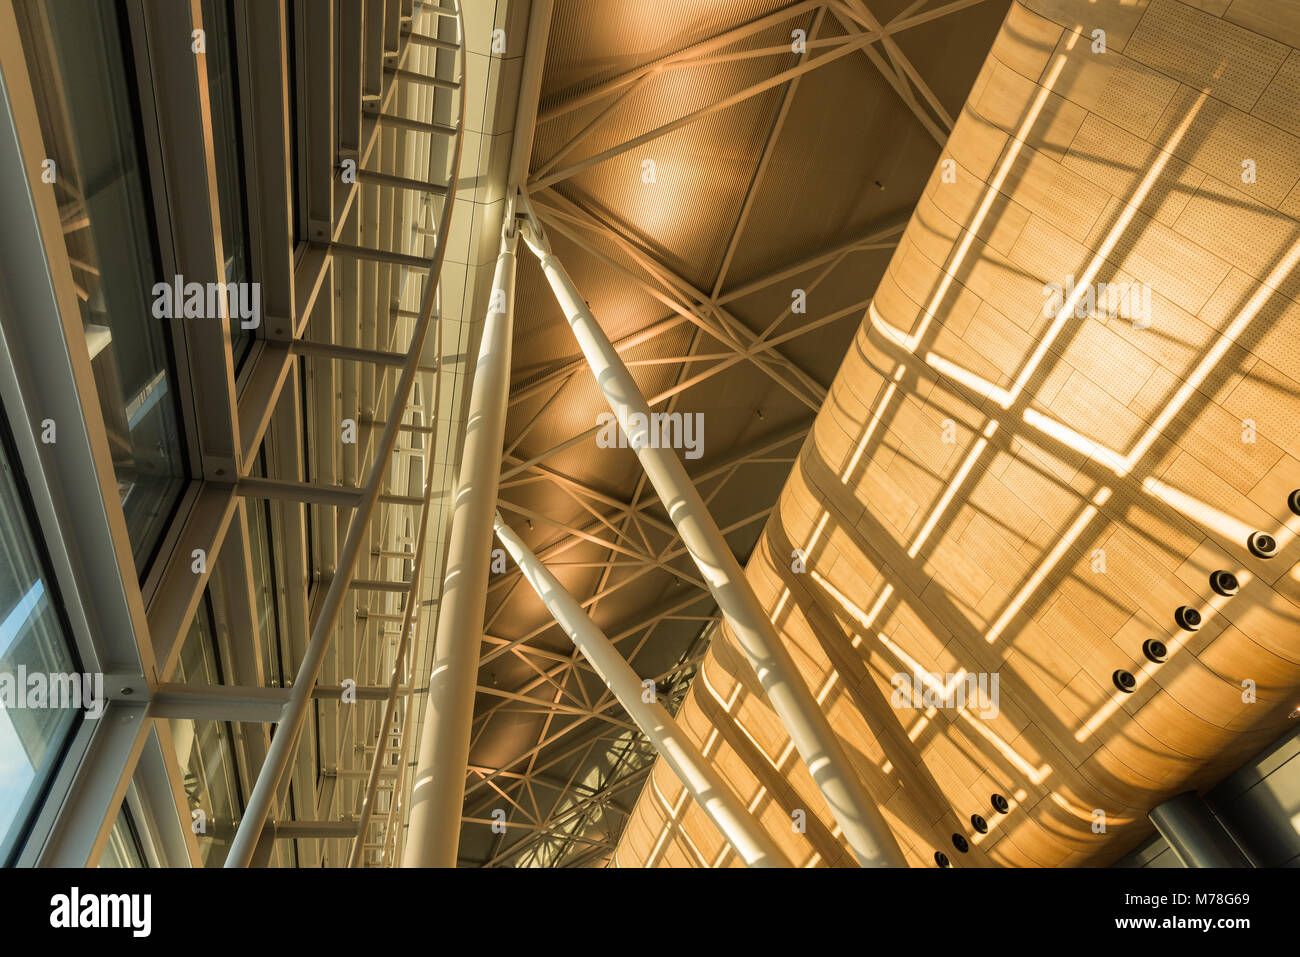 Zurich airport ceiling structure - Stock Image